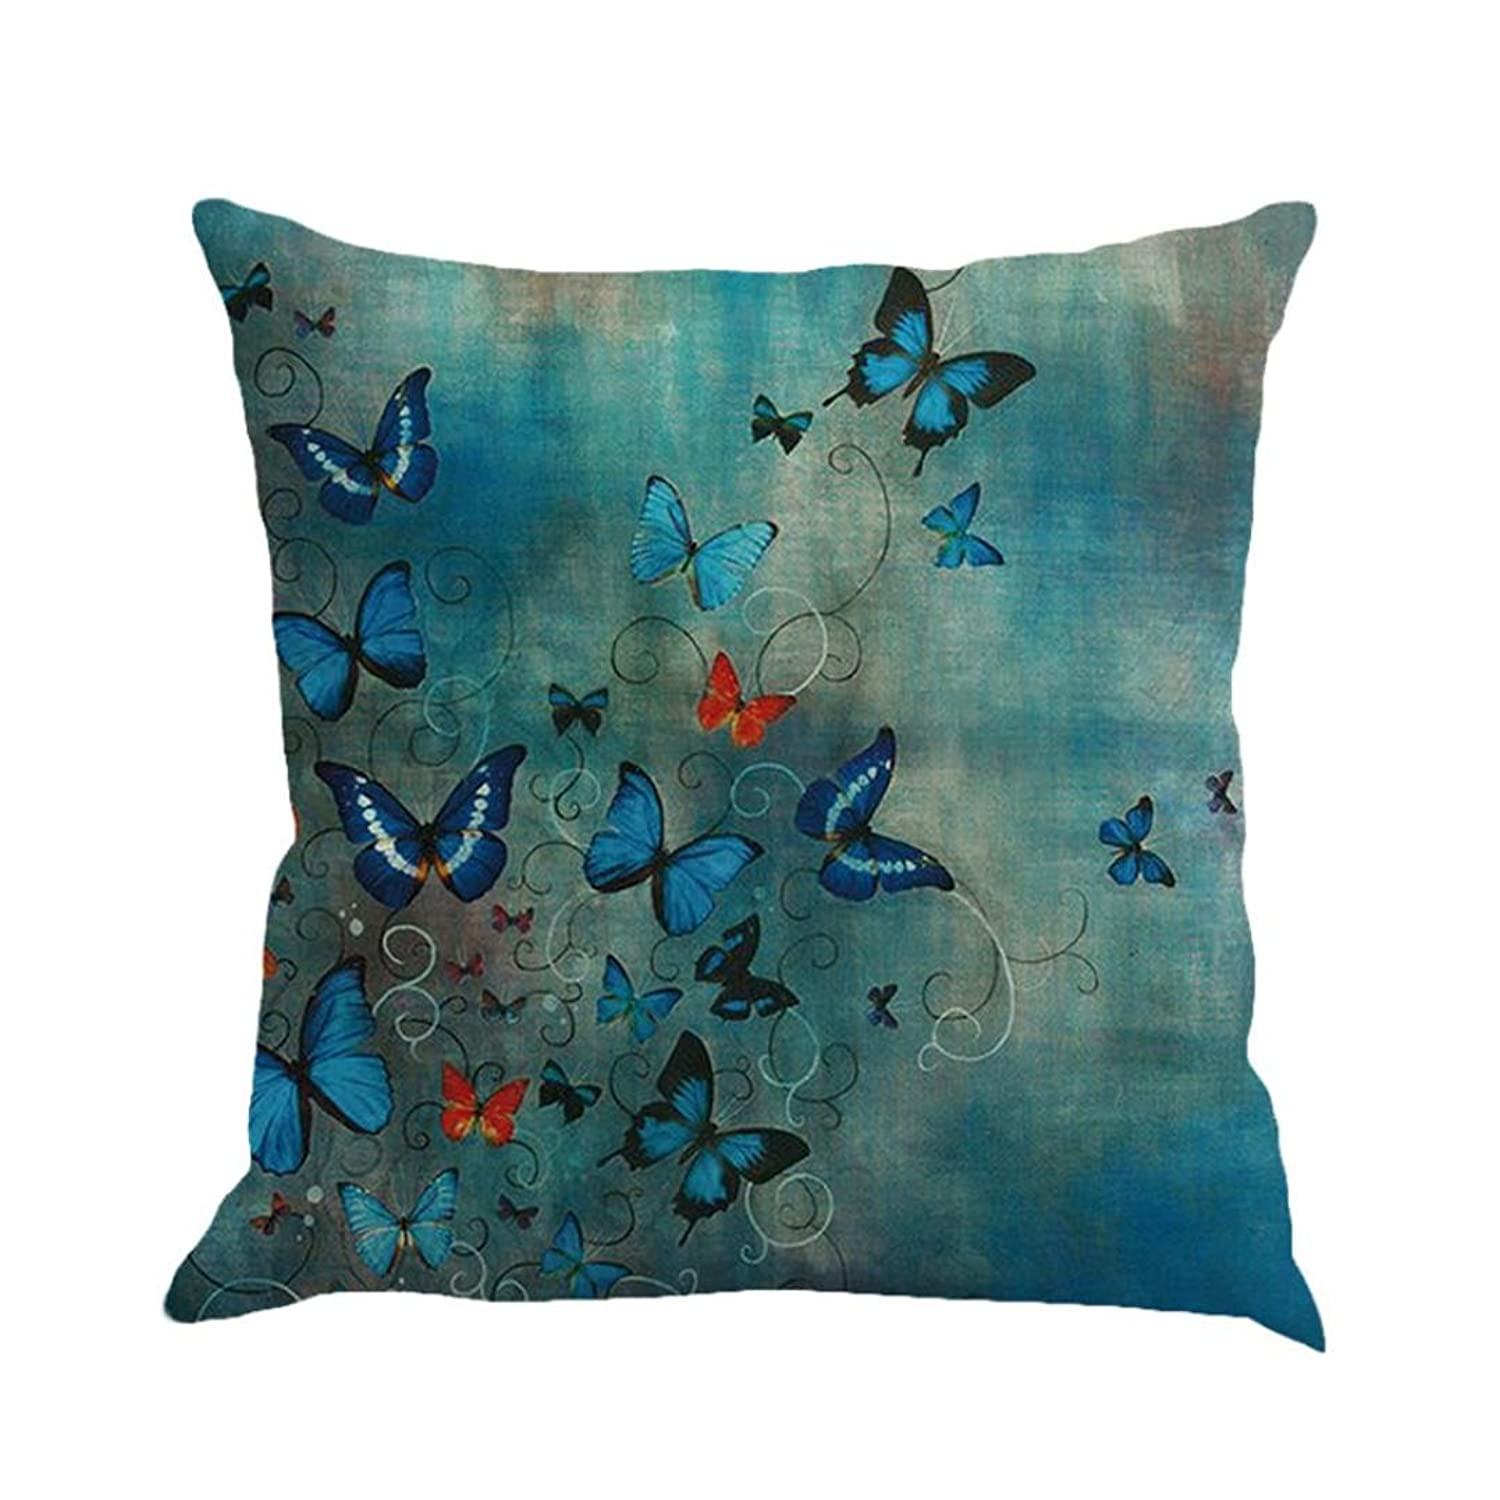 KMG Butterfly Throw Pillow Cases, Kimloog Square Flax Cushion Cover Car Sofa Home Decorative 18 x 18 Pillowcase